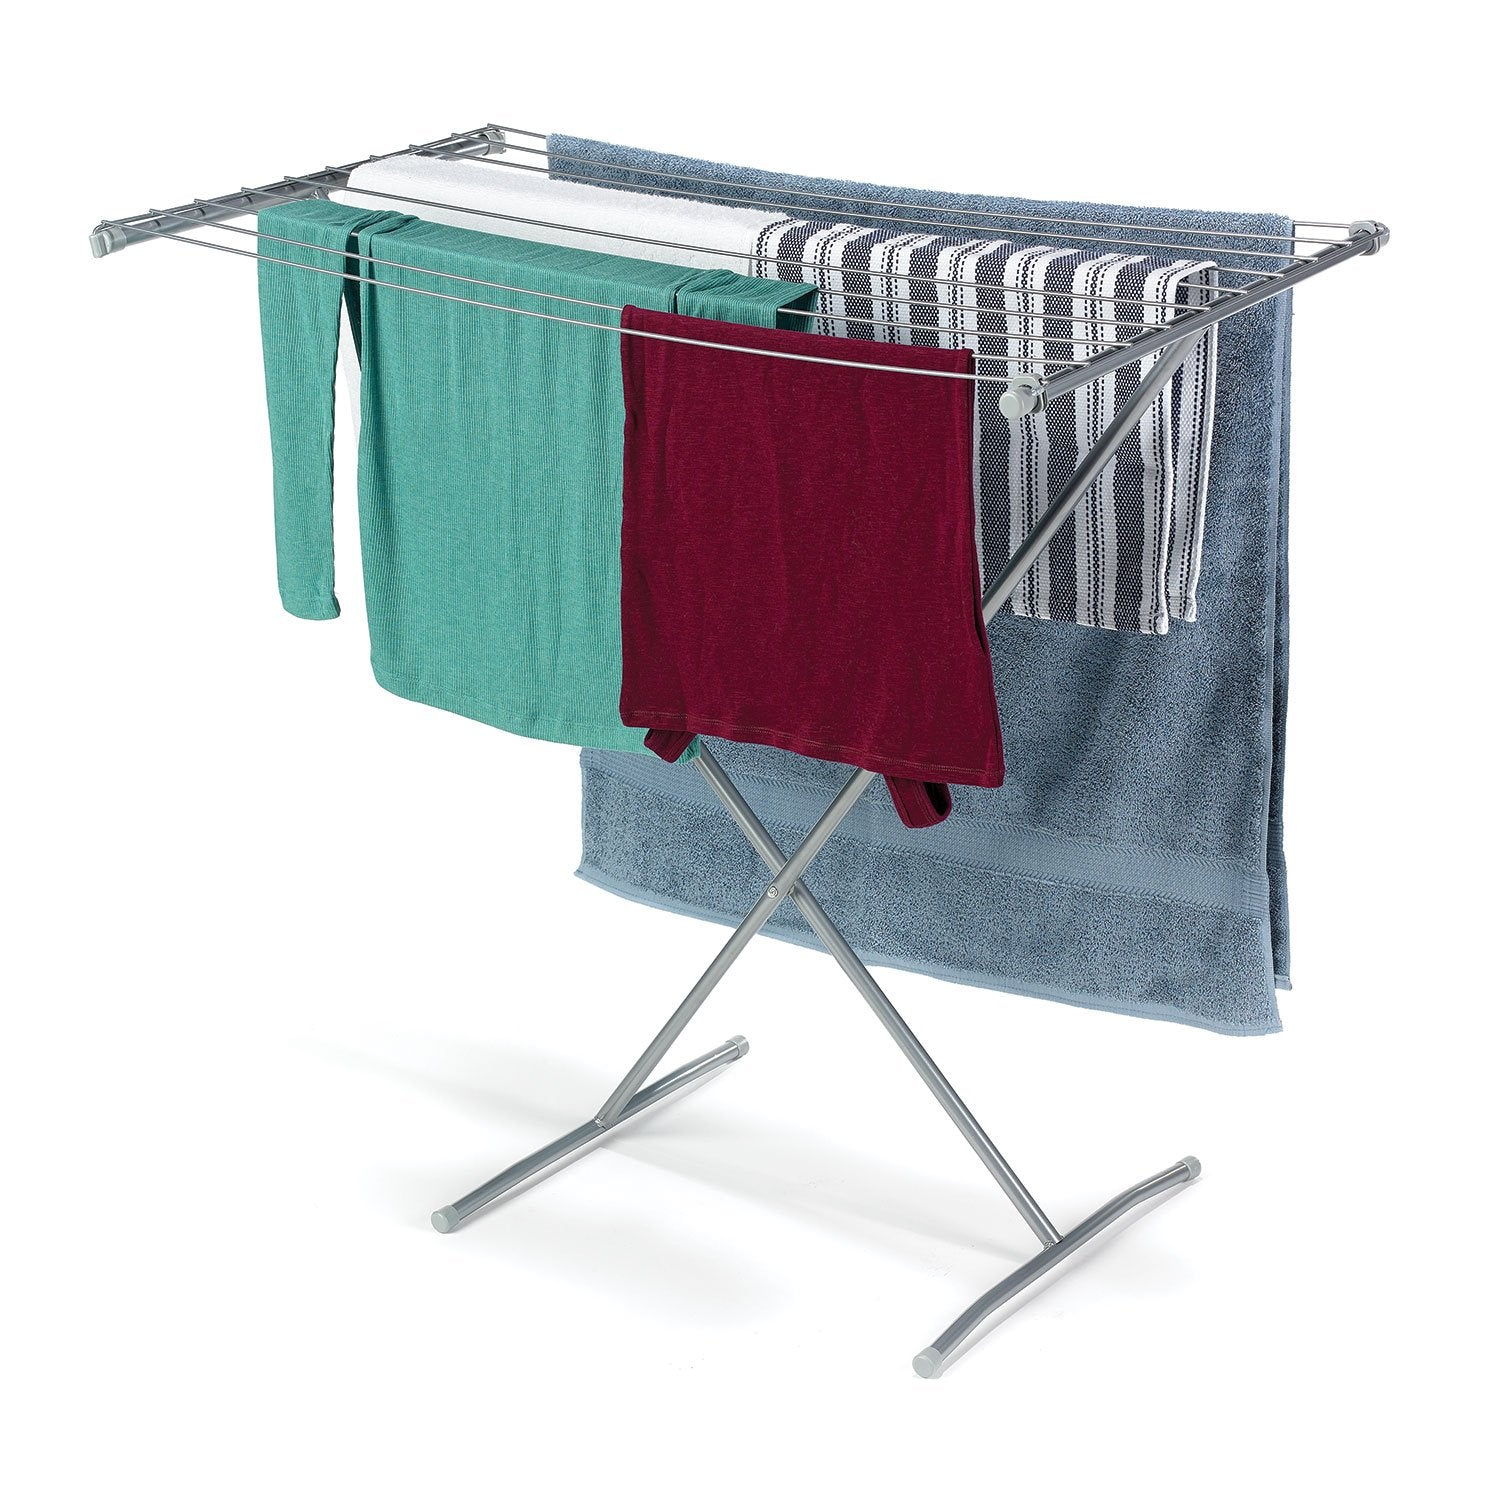 Deluxe Freestanding Dryer